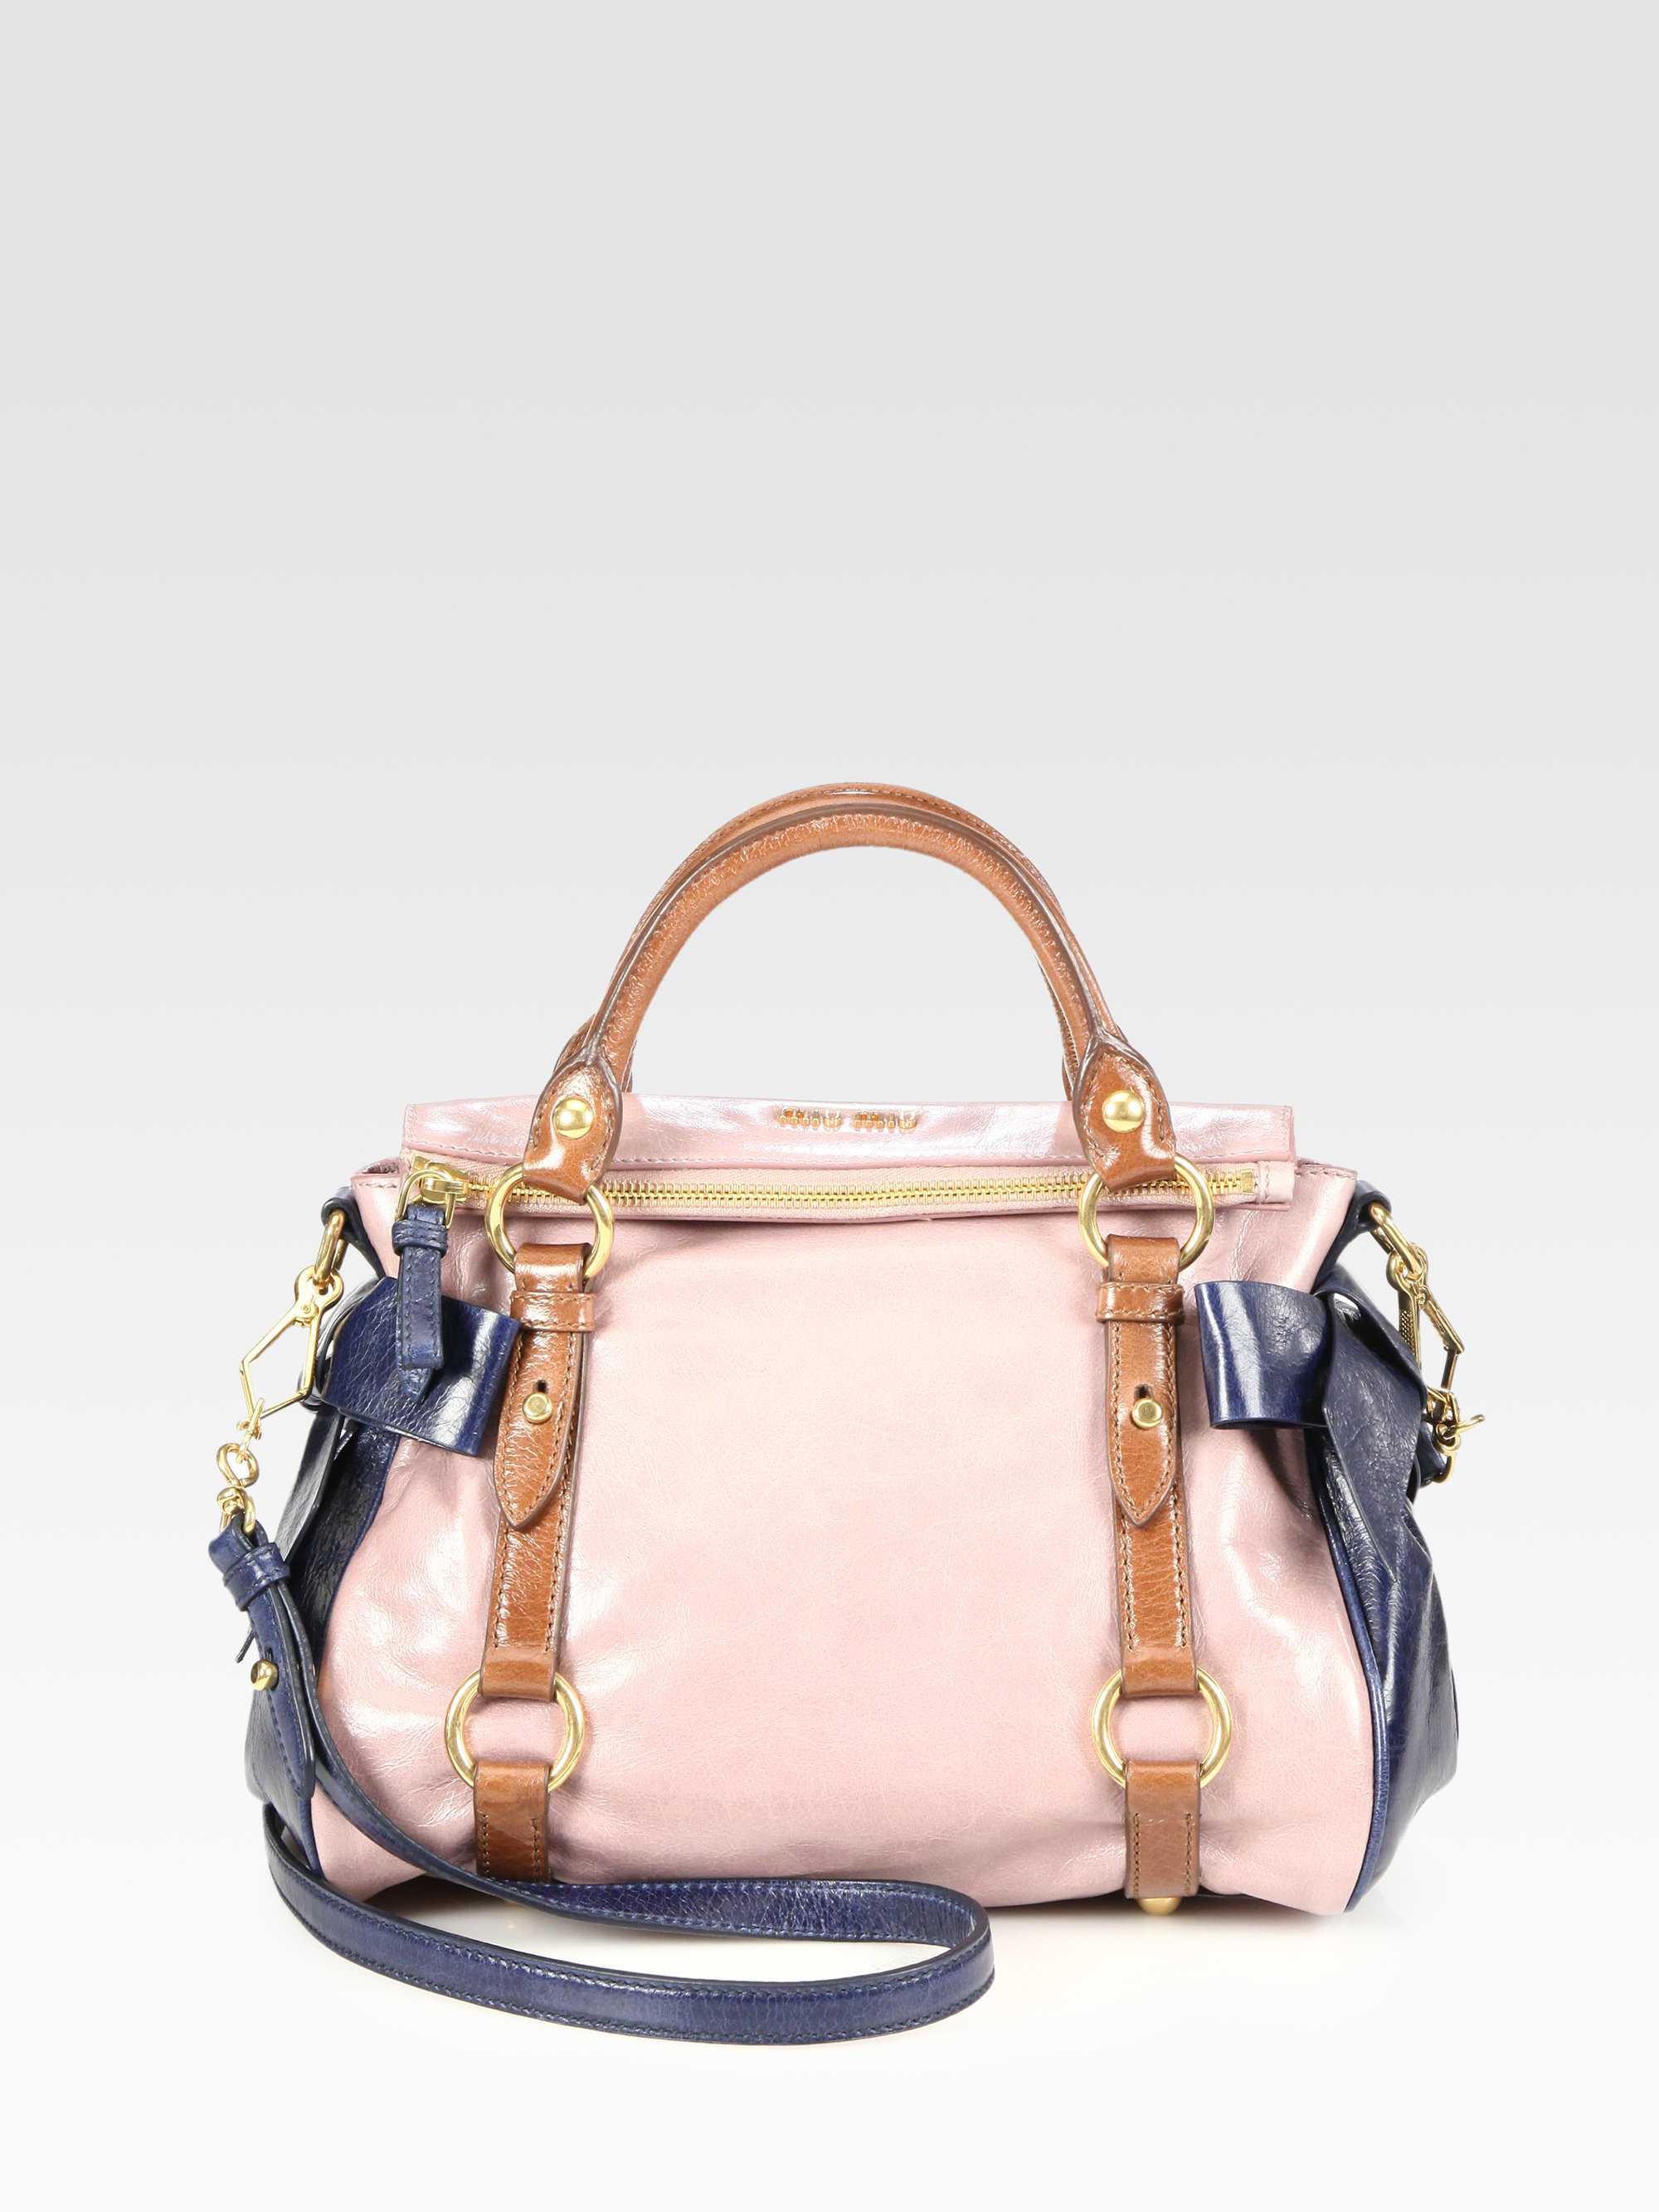 eab8dcf62975 Lyst - Miu Miu Vitello Lux Small Bow Satchel in Pink